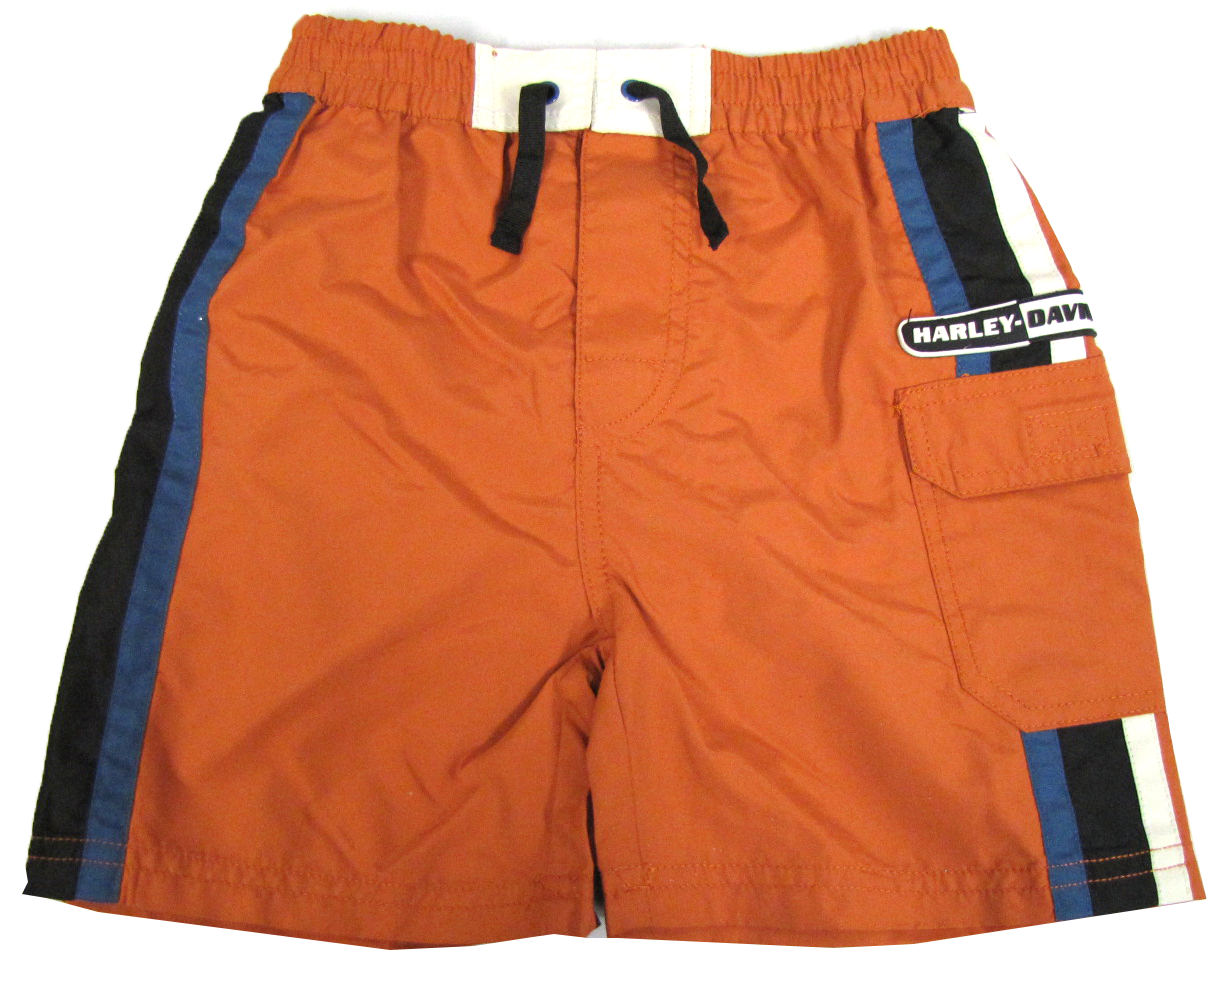 http://www.adventureharley.com/harley-davidson-boys-swim-trunks-orange